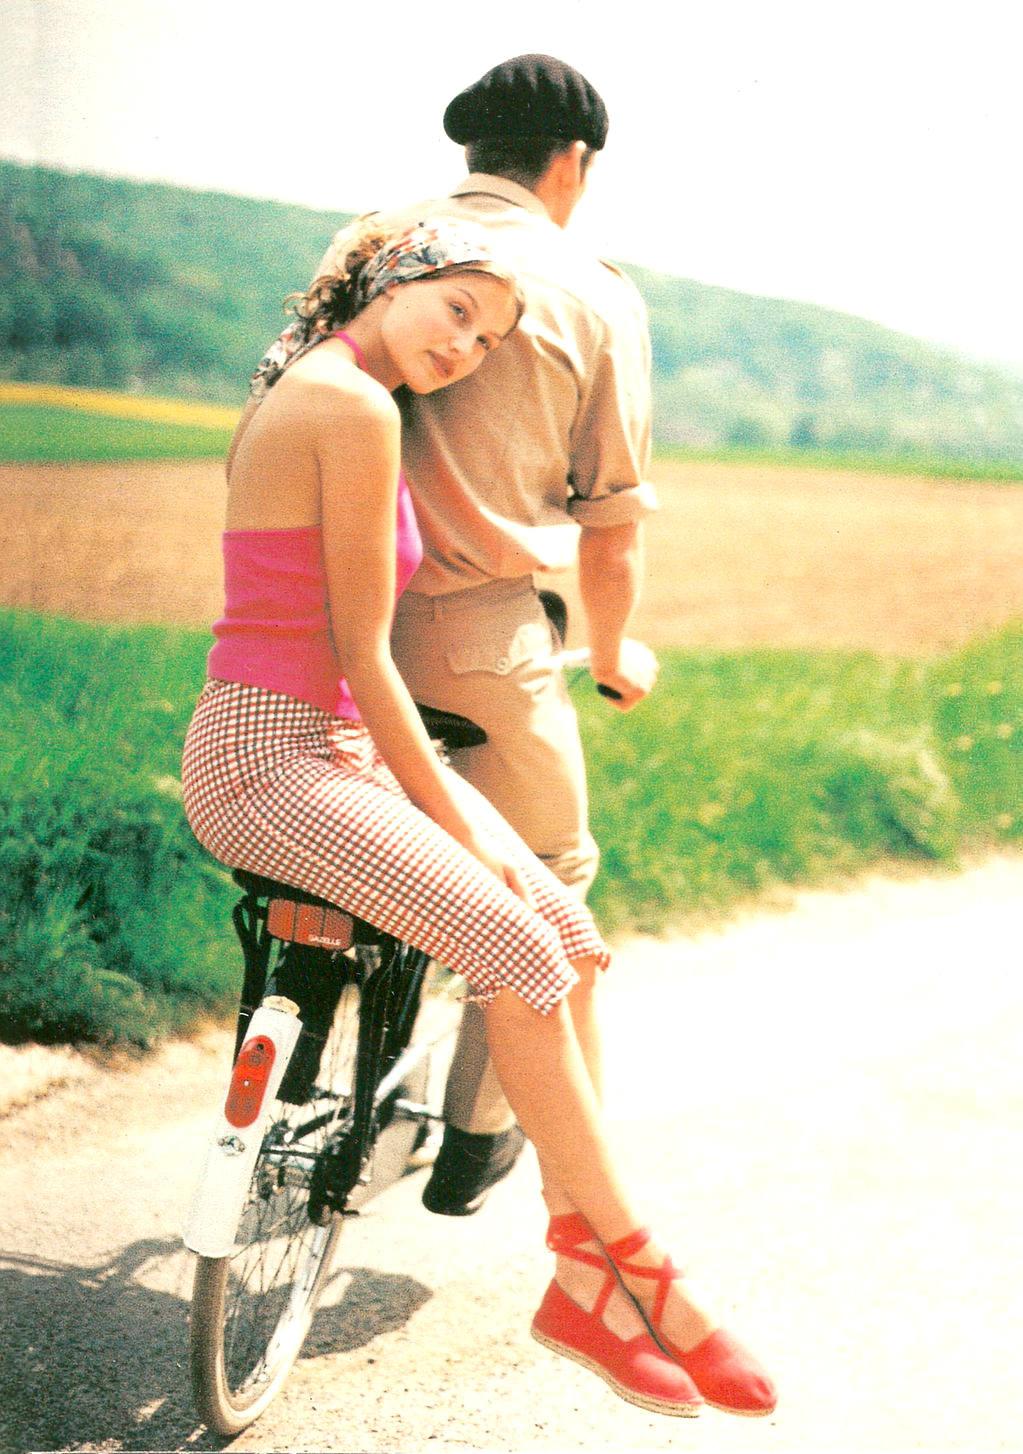 Laetitia Casta in Marie Claire France July 1995 / bicycles in Vogue, Harper's Bazaar, Marie Claire, Elle fashion editorials and campaigns / via fashioned by love british fashion blog